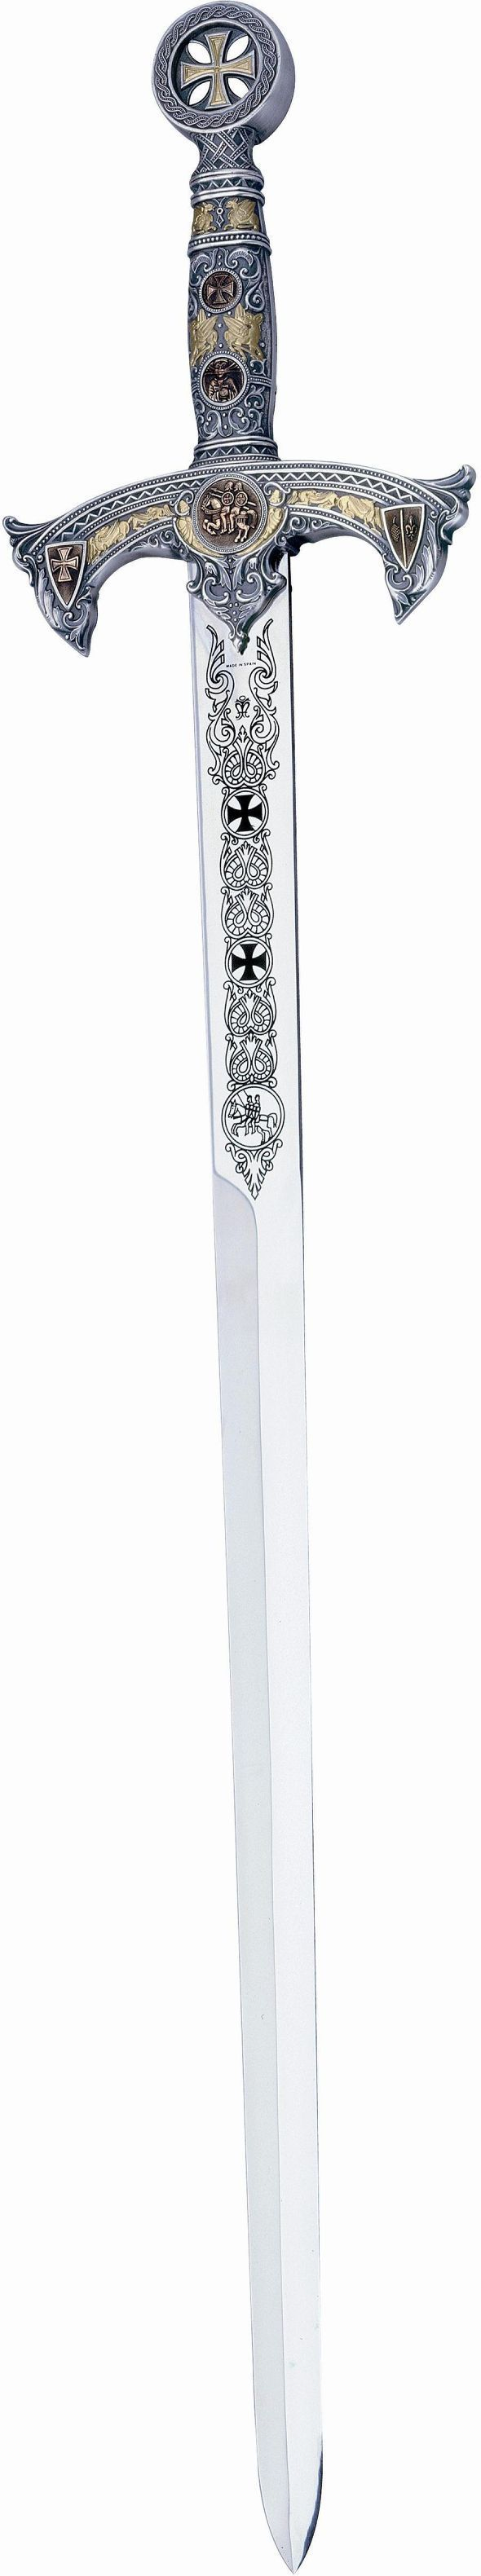 Knights Templar:  Silver Deluxe #Templar #Knights Sword, by Marto of Spain.